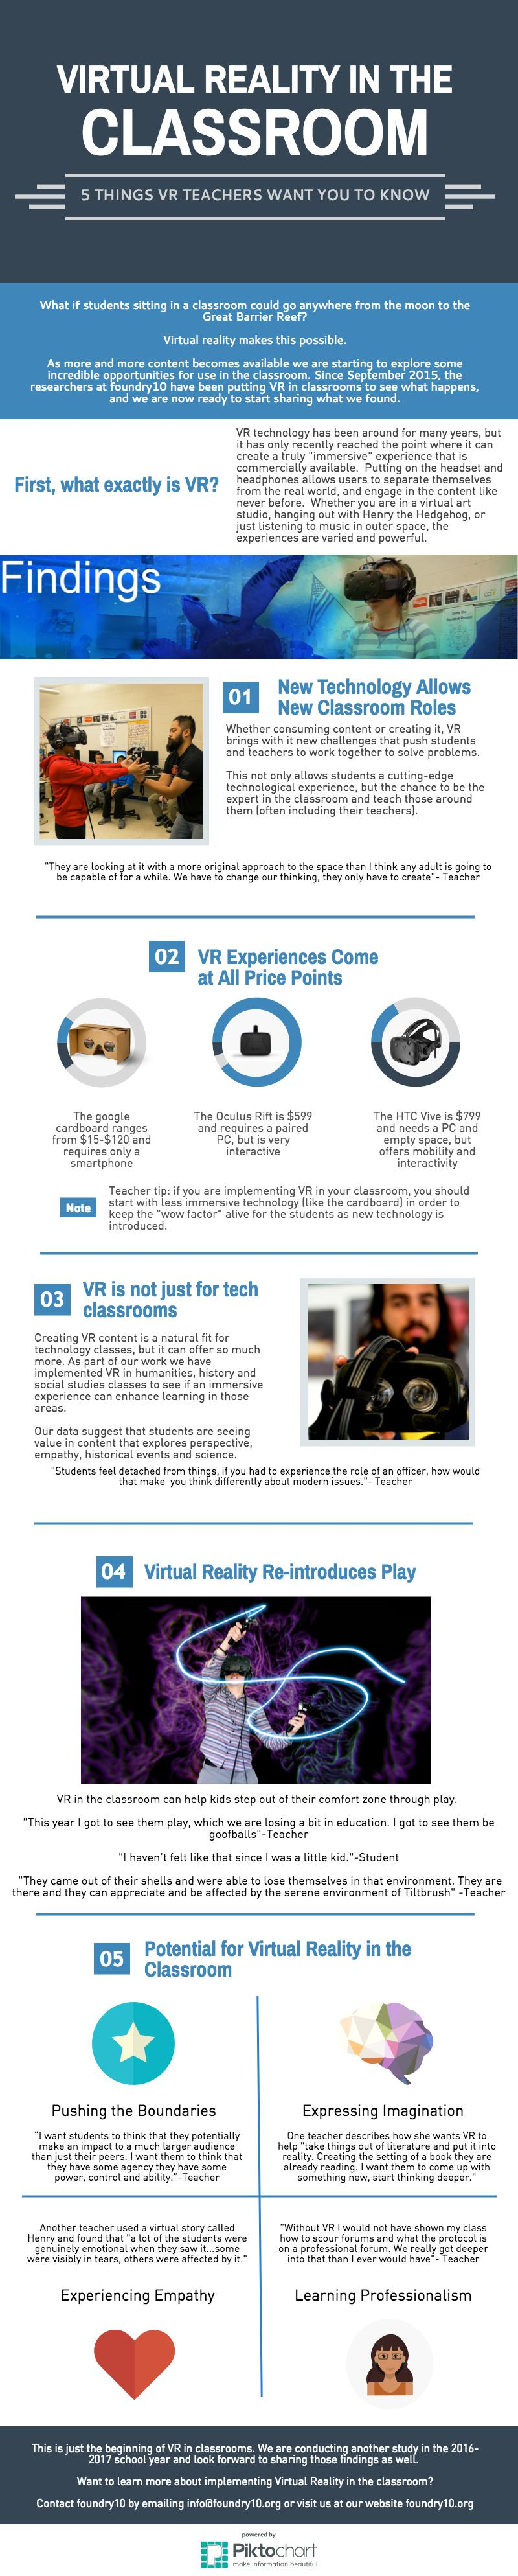 a-virtual-reality-in-the-classroom-5-things-conflict-copy-1